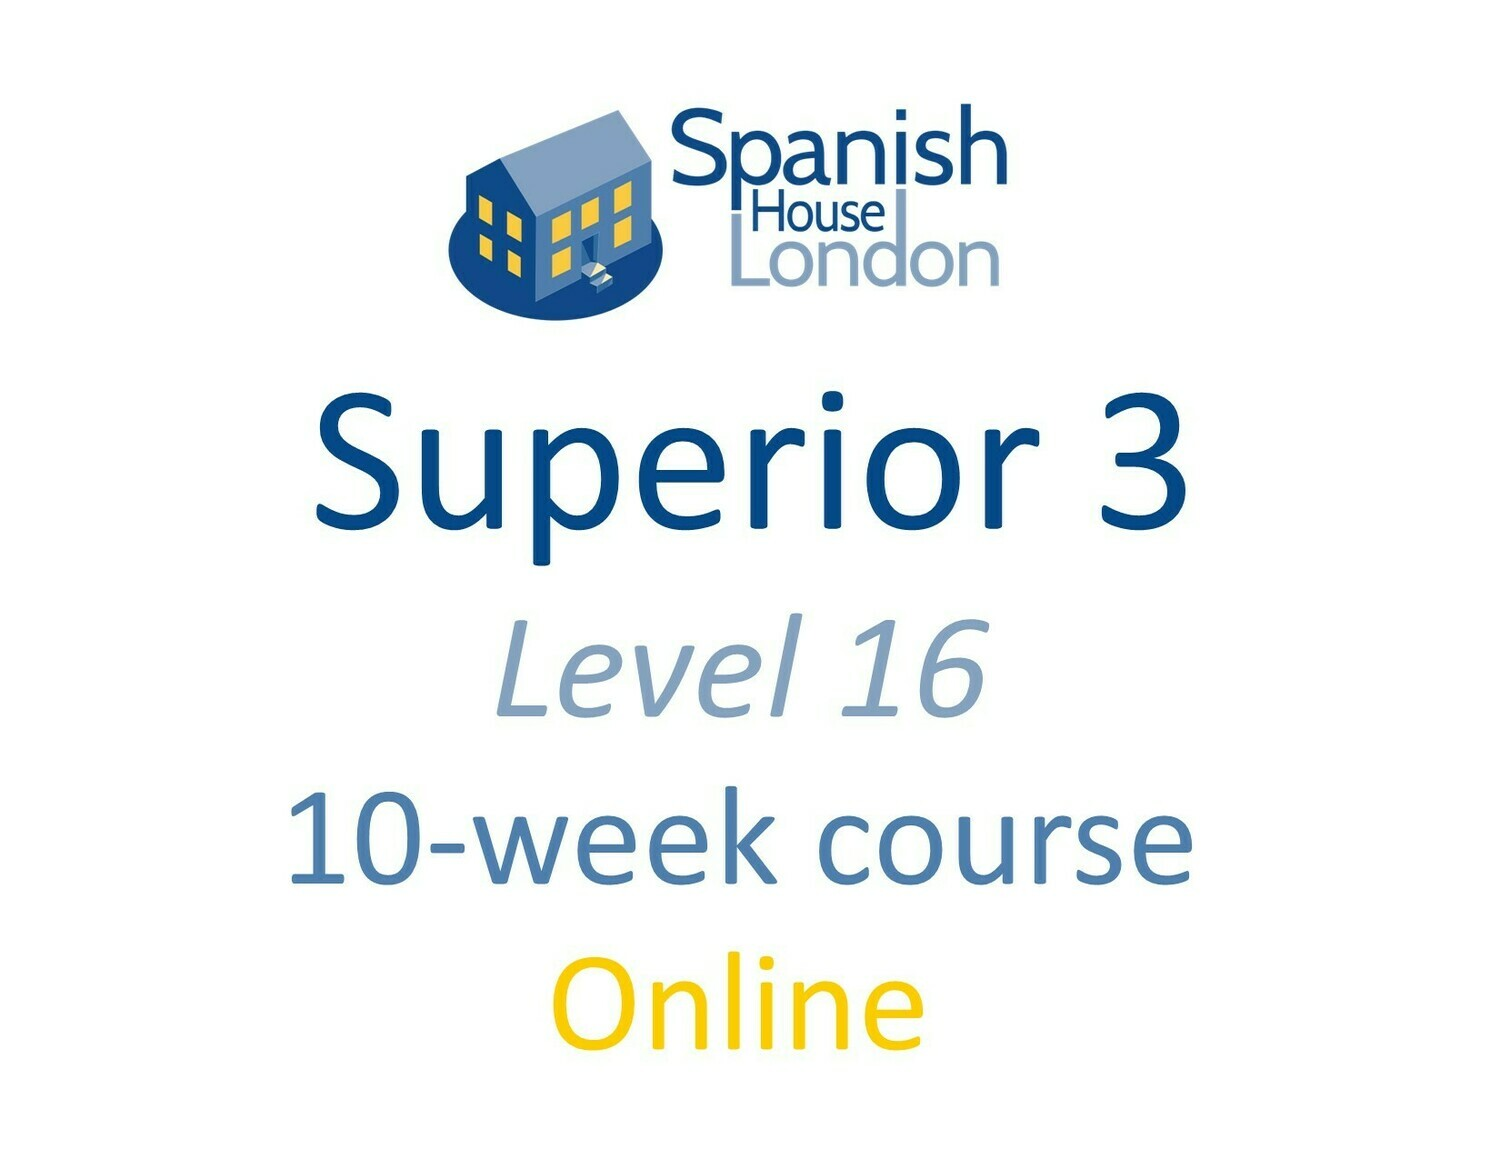 Superior 3 Course starting on 15th November at 6pm